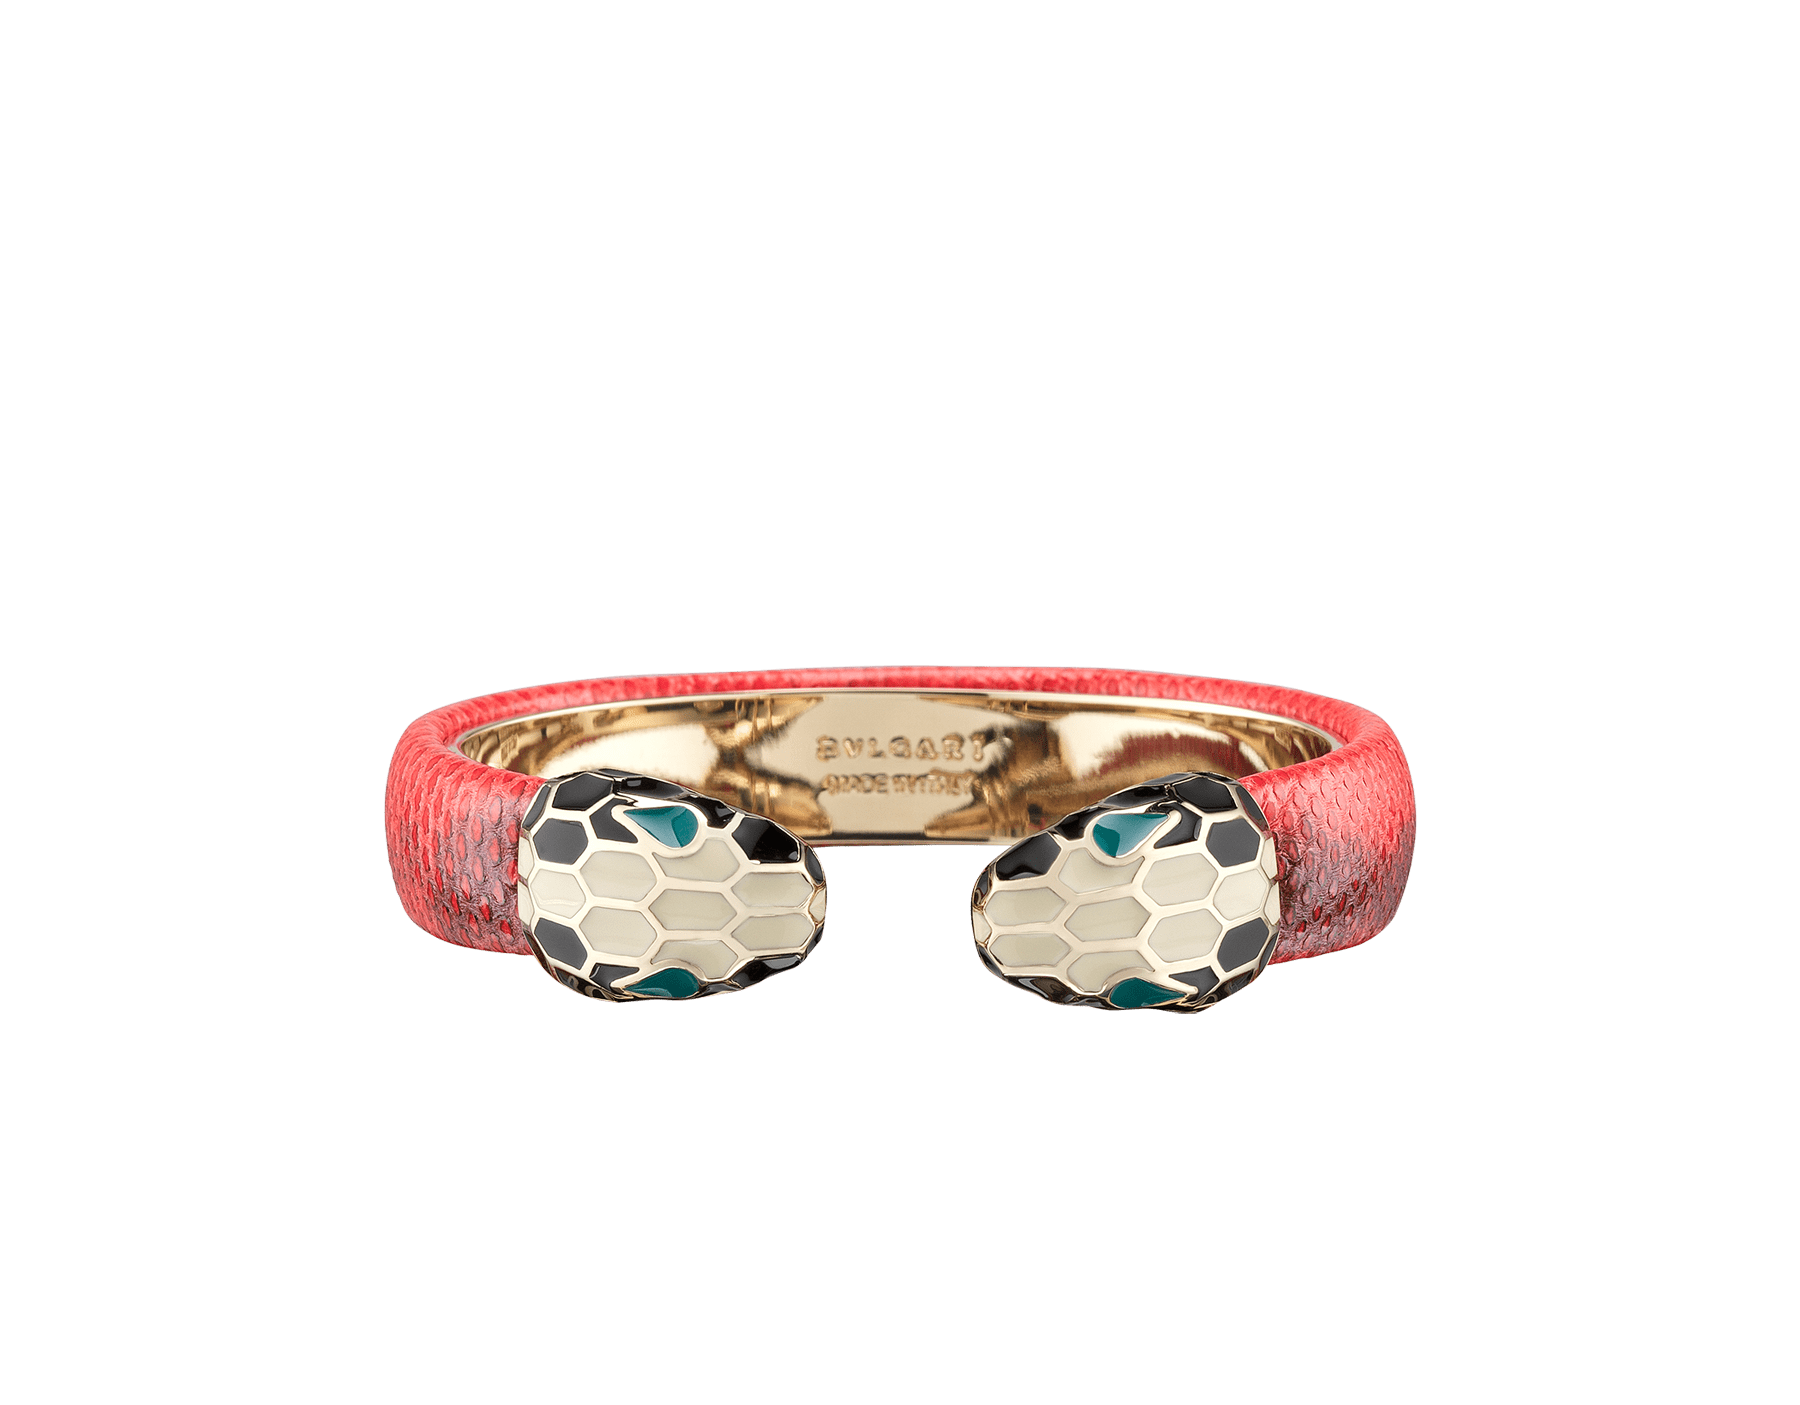 Serpenti Forever bangle bracelet in sea star coral shiny karung skin, with brass light gold plated hardware. Iconic contraire snakehead décor in black and white enamel, with green enamel eyes. SPContr-SK-SSC image 1